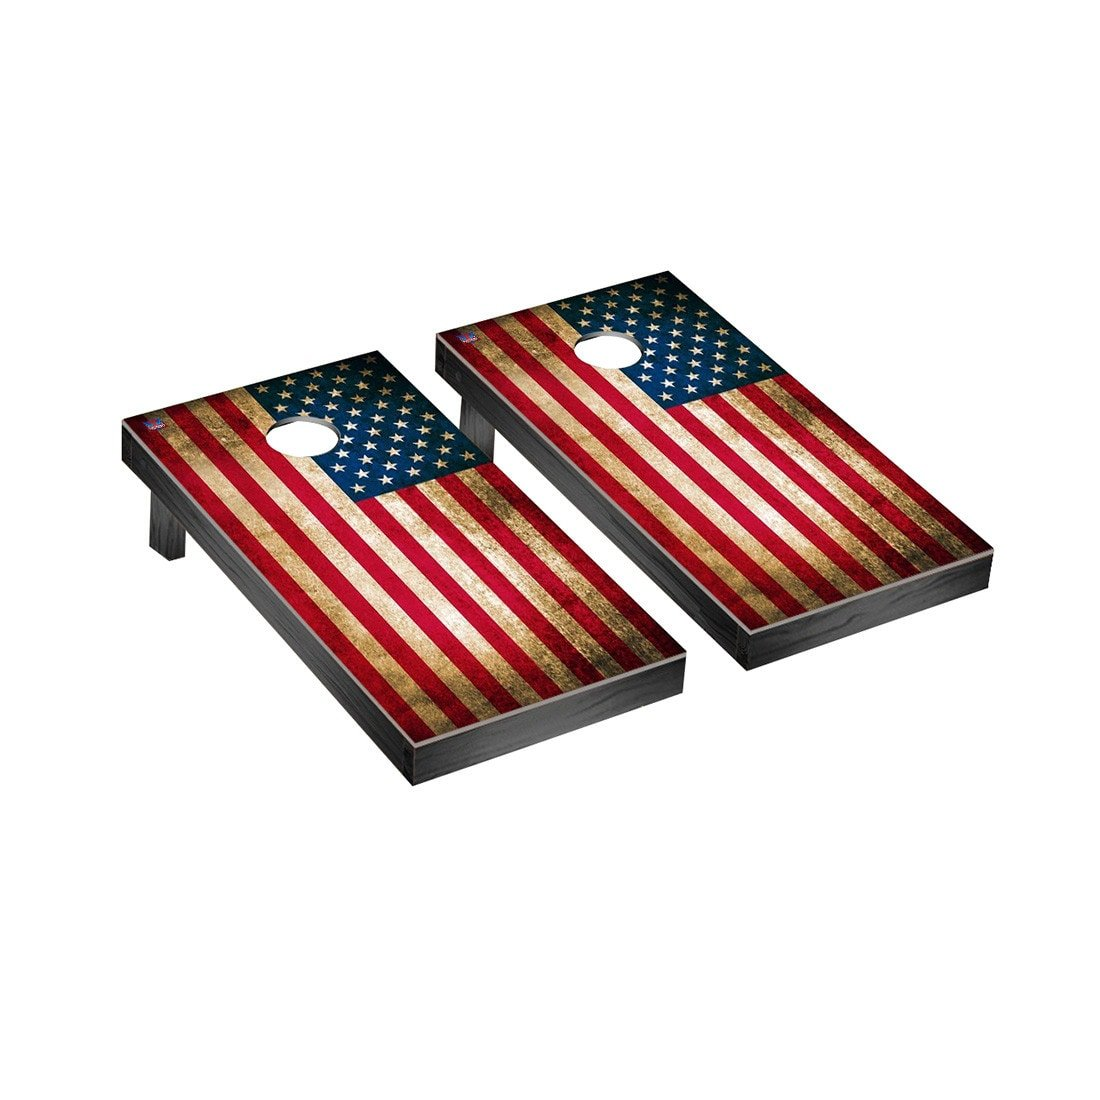 US Vintage Flag Regulation Cornhole Game Set by Victory Tailgate